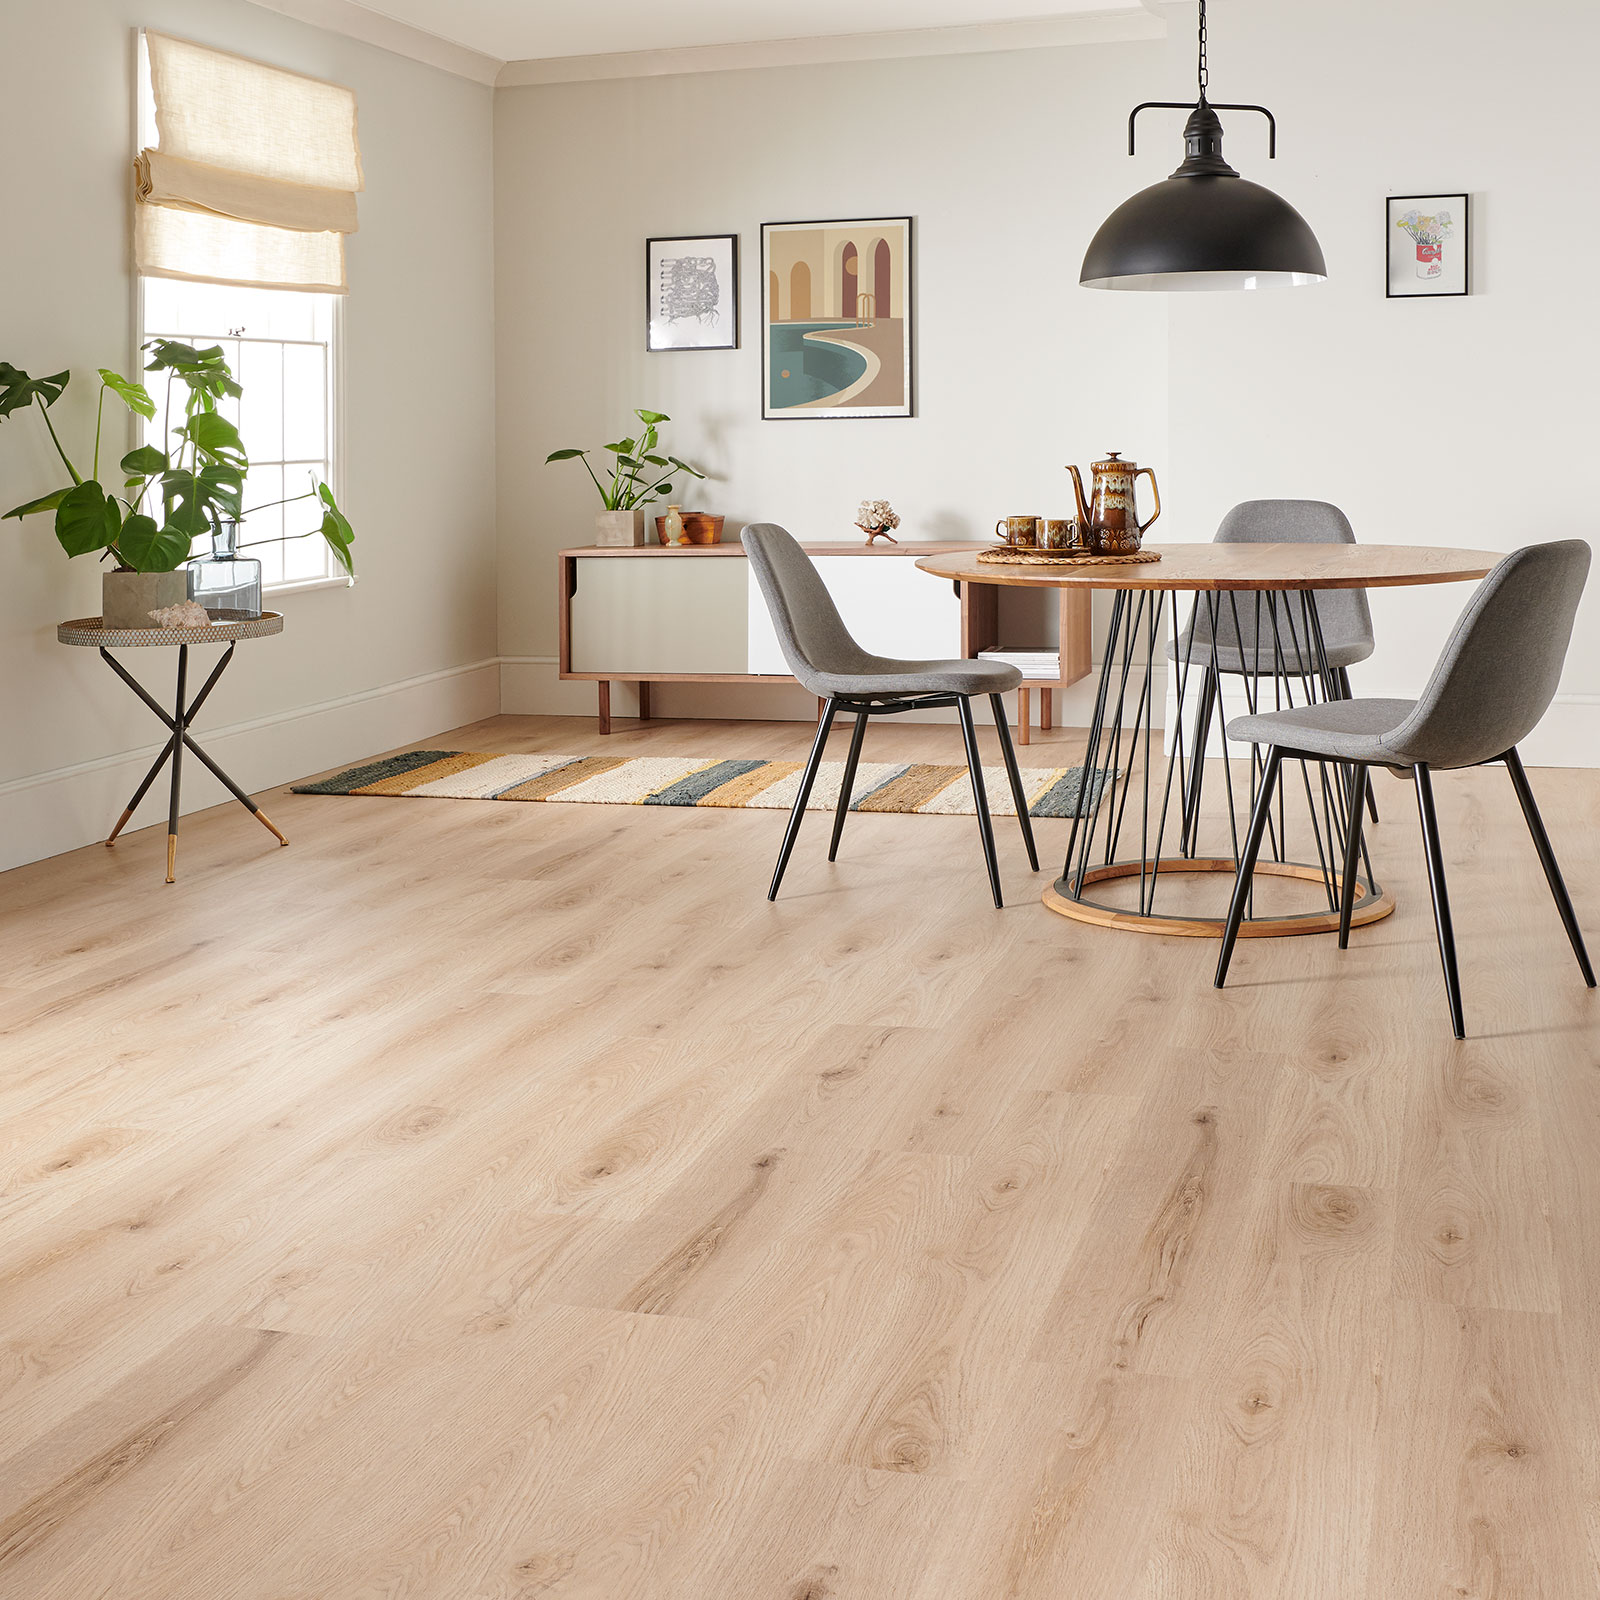 Wood Flooring Trends 2020.Find The New Flooring Trends You Can Expect To See For 2020